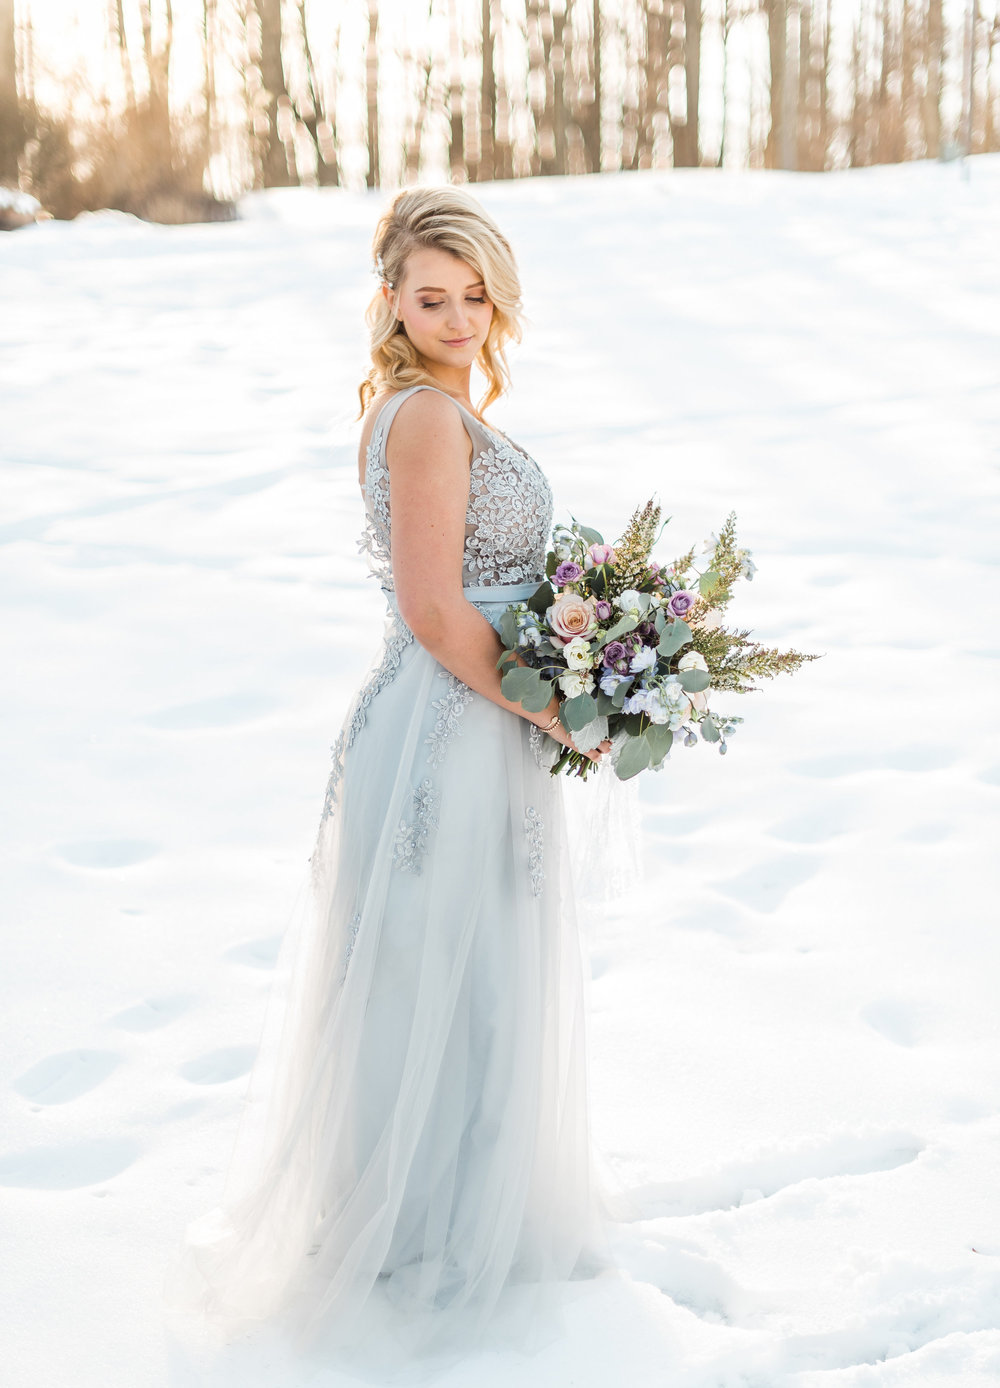 winter-romantic-snowy-pastel-pennsylvania-pittsburgh-wedding-styled-shoot-0014.jpg